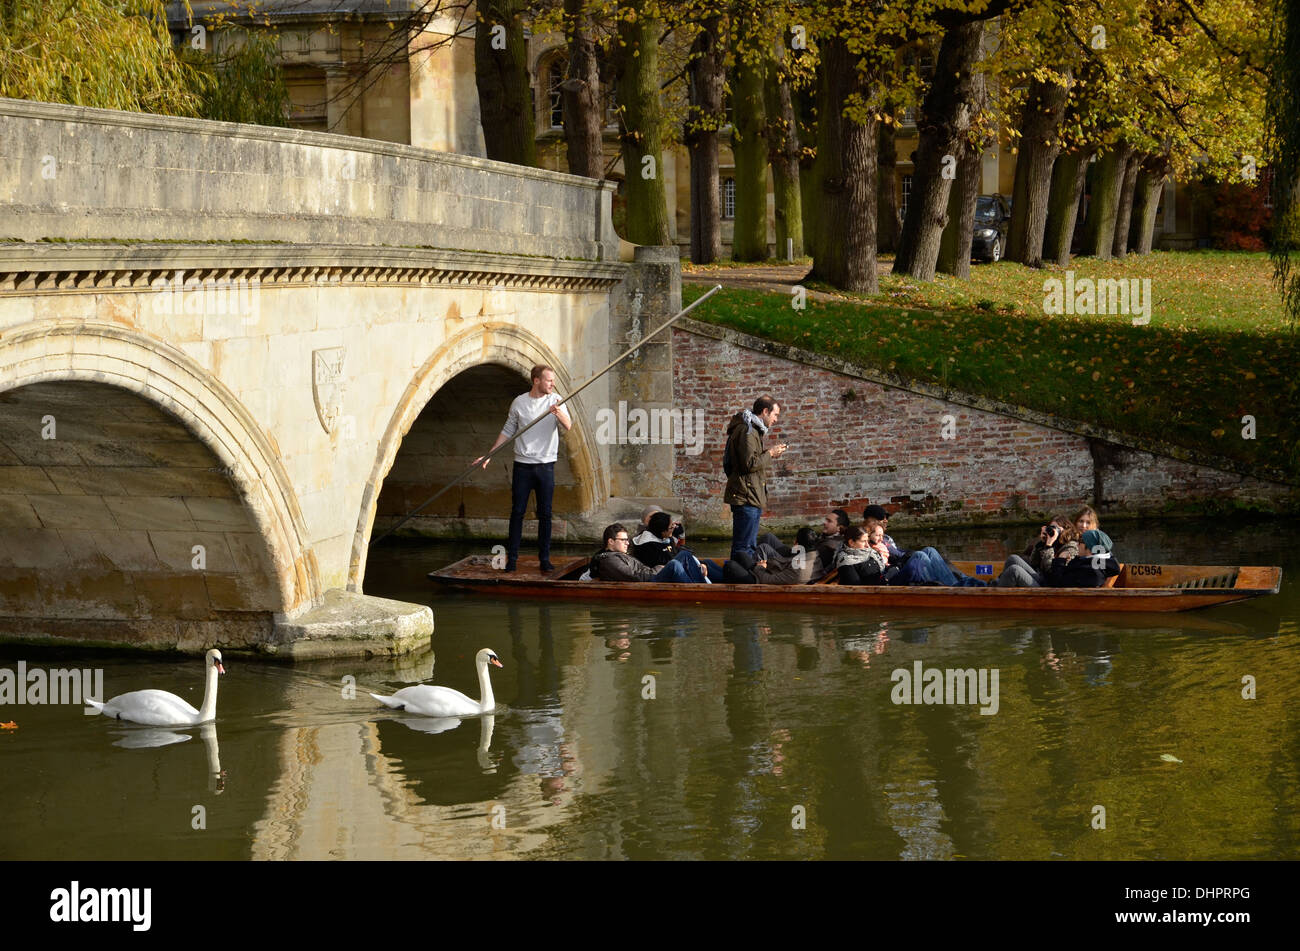 Punting on the River Cam in Cambridge, England - Stock Image